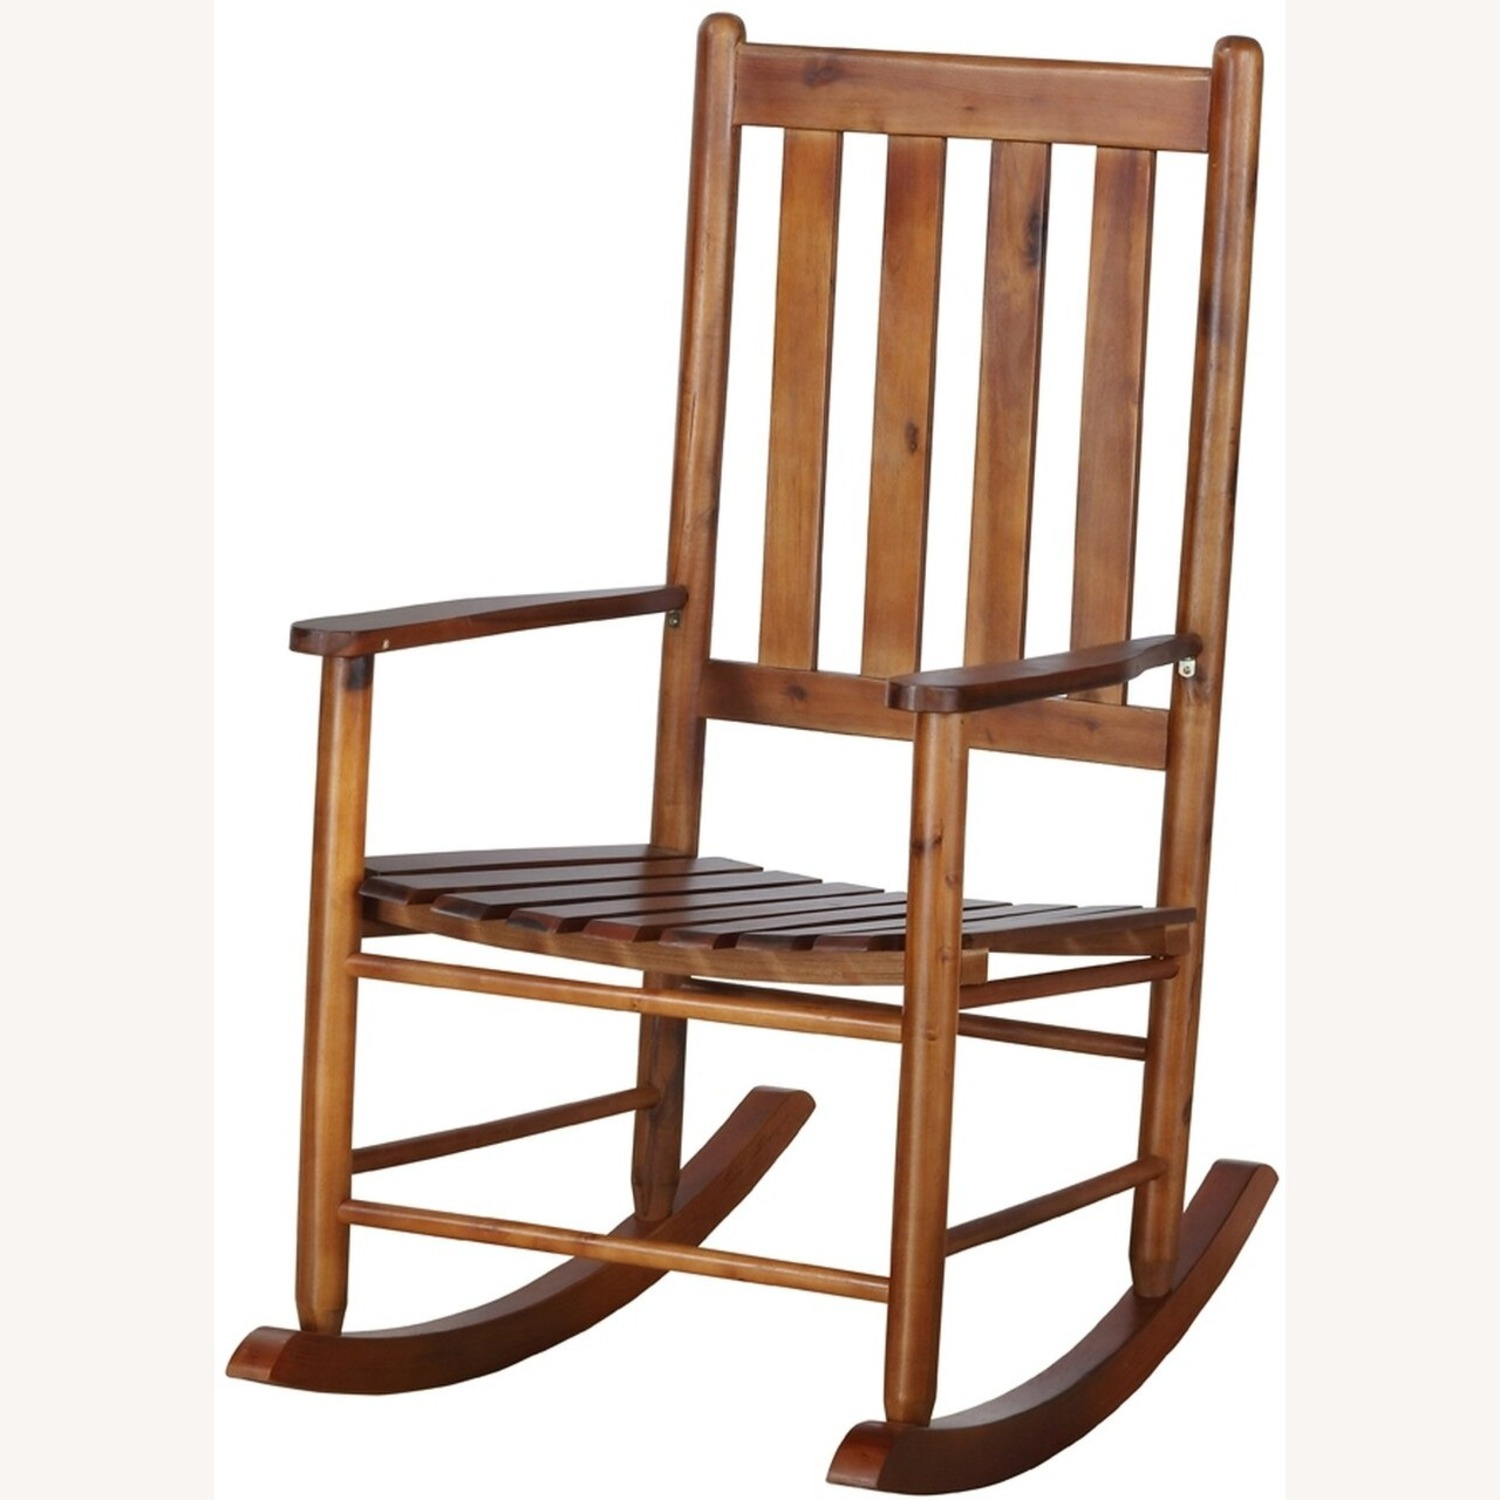 Rocking Chair In Golden Brown Solid Acacia Finish - image-1